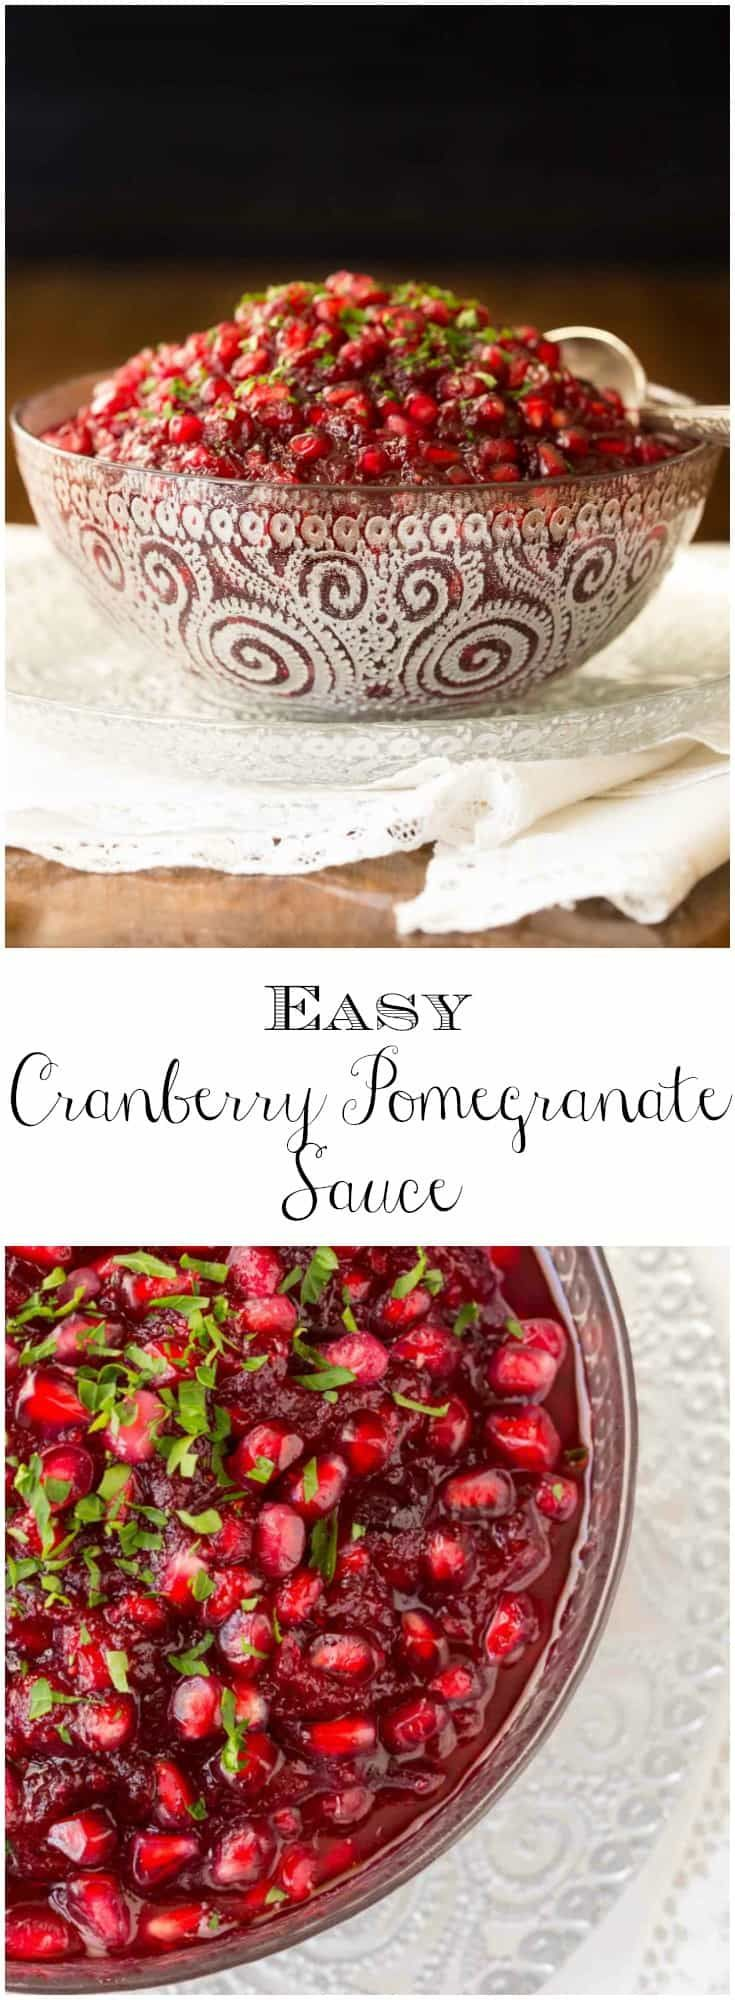 Easy Cranberry Pomegranate Sauce - the easiest , most delicious cranberry sauce ever with ginger, lemongrass and pomegranates!   via @cafesucrefarine